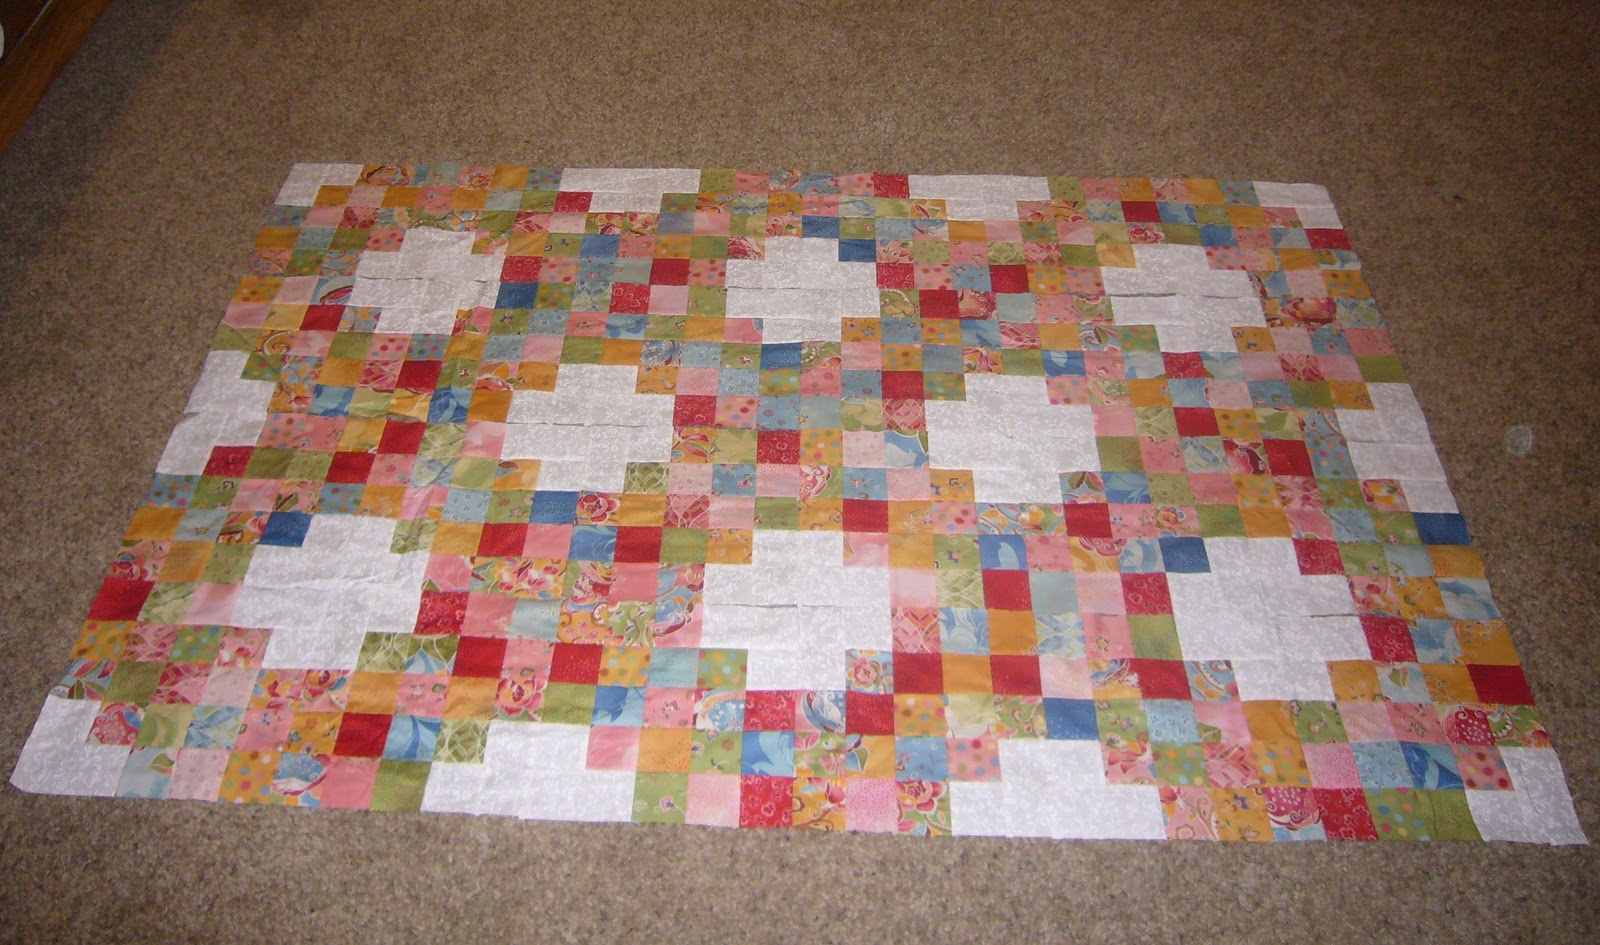 It Is A Variation Of An Irish Chain Pattern Made With Jelly Rolls I Used From The Fabric Collection Boutique By Chez Moi